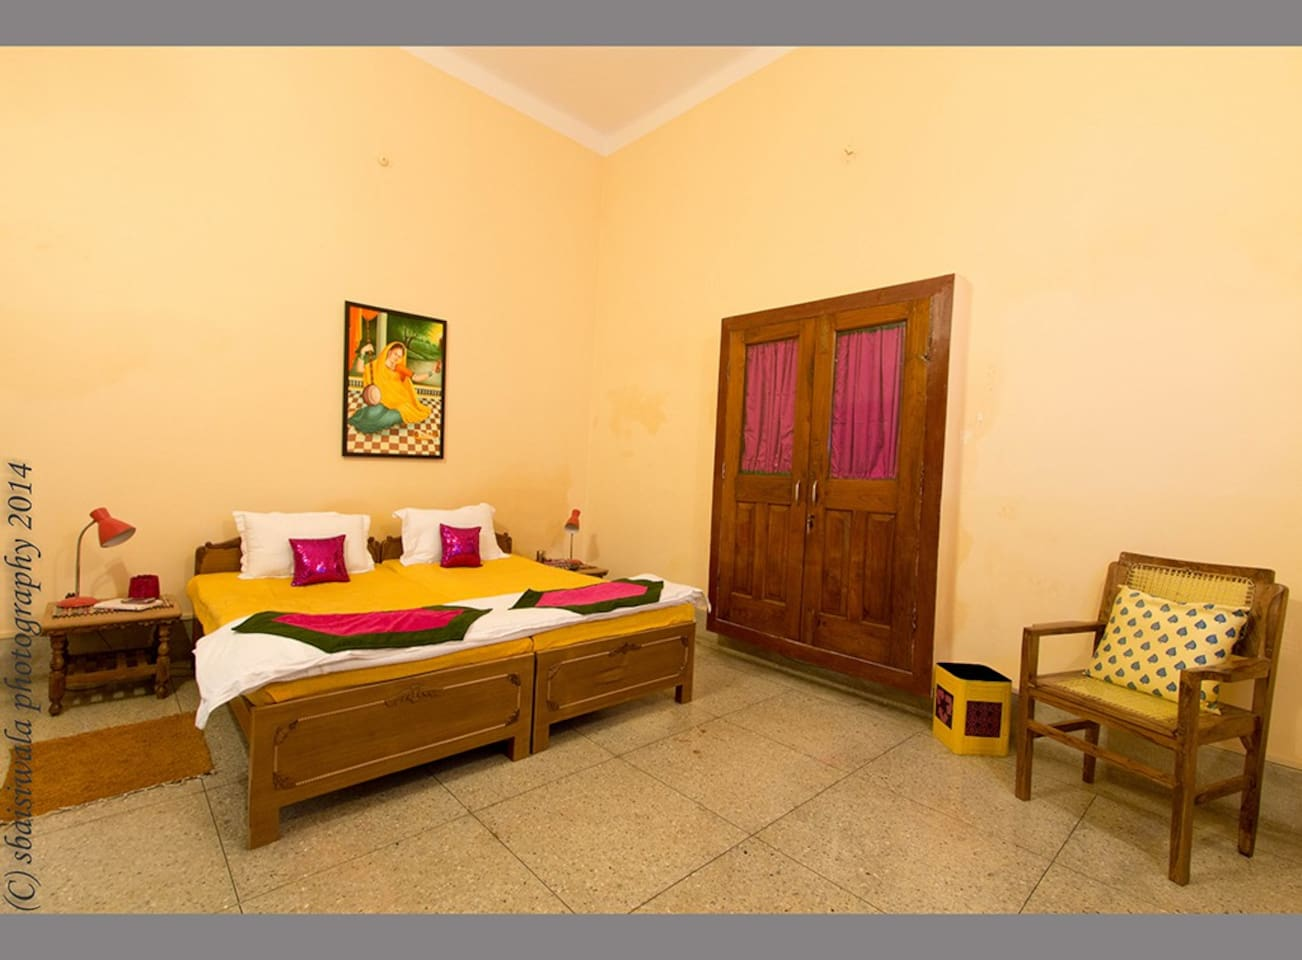 Mira room - double bed AC room with ensuite bath. There is power back-up - a must in Varanasi.